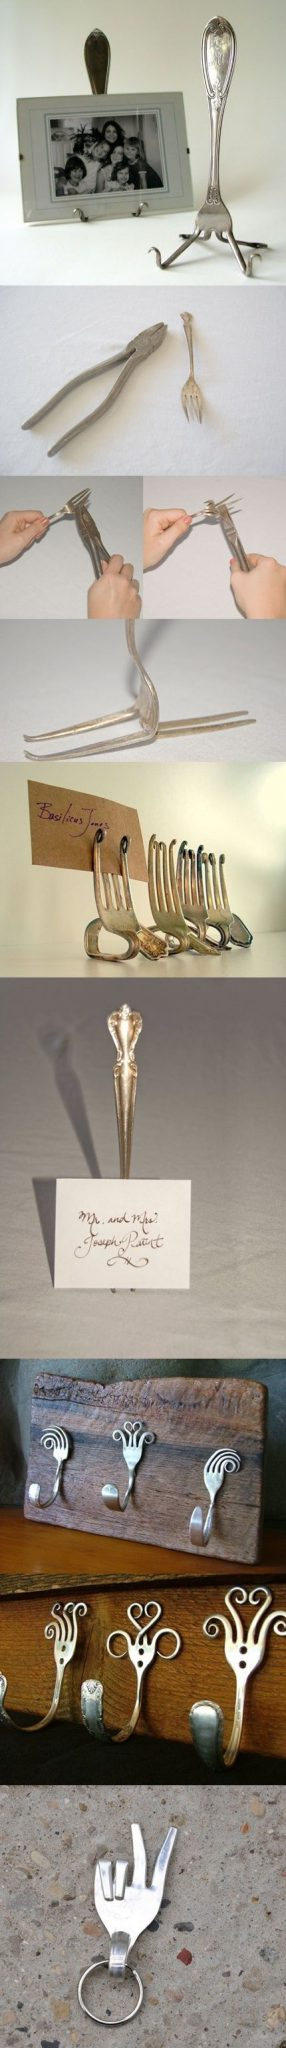 Upcycle decore, recycle decor, repurpose, thrift store finds, decore makeover, flatware, upcycle old silver, vintage utensils